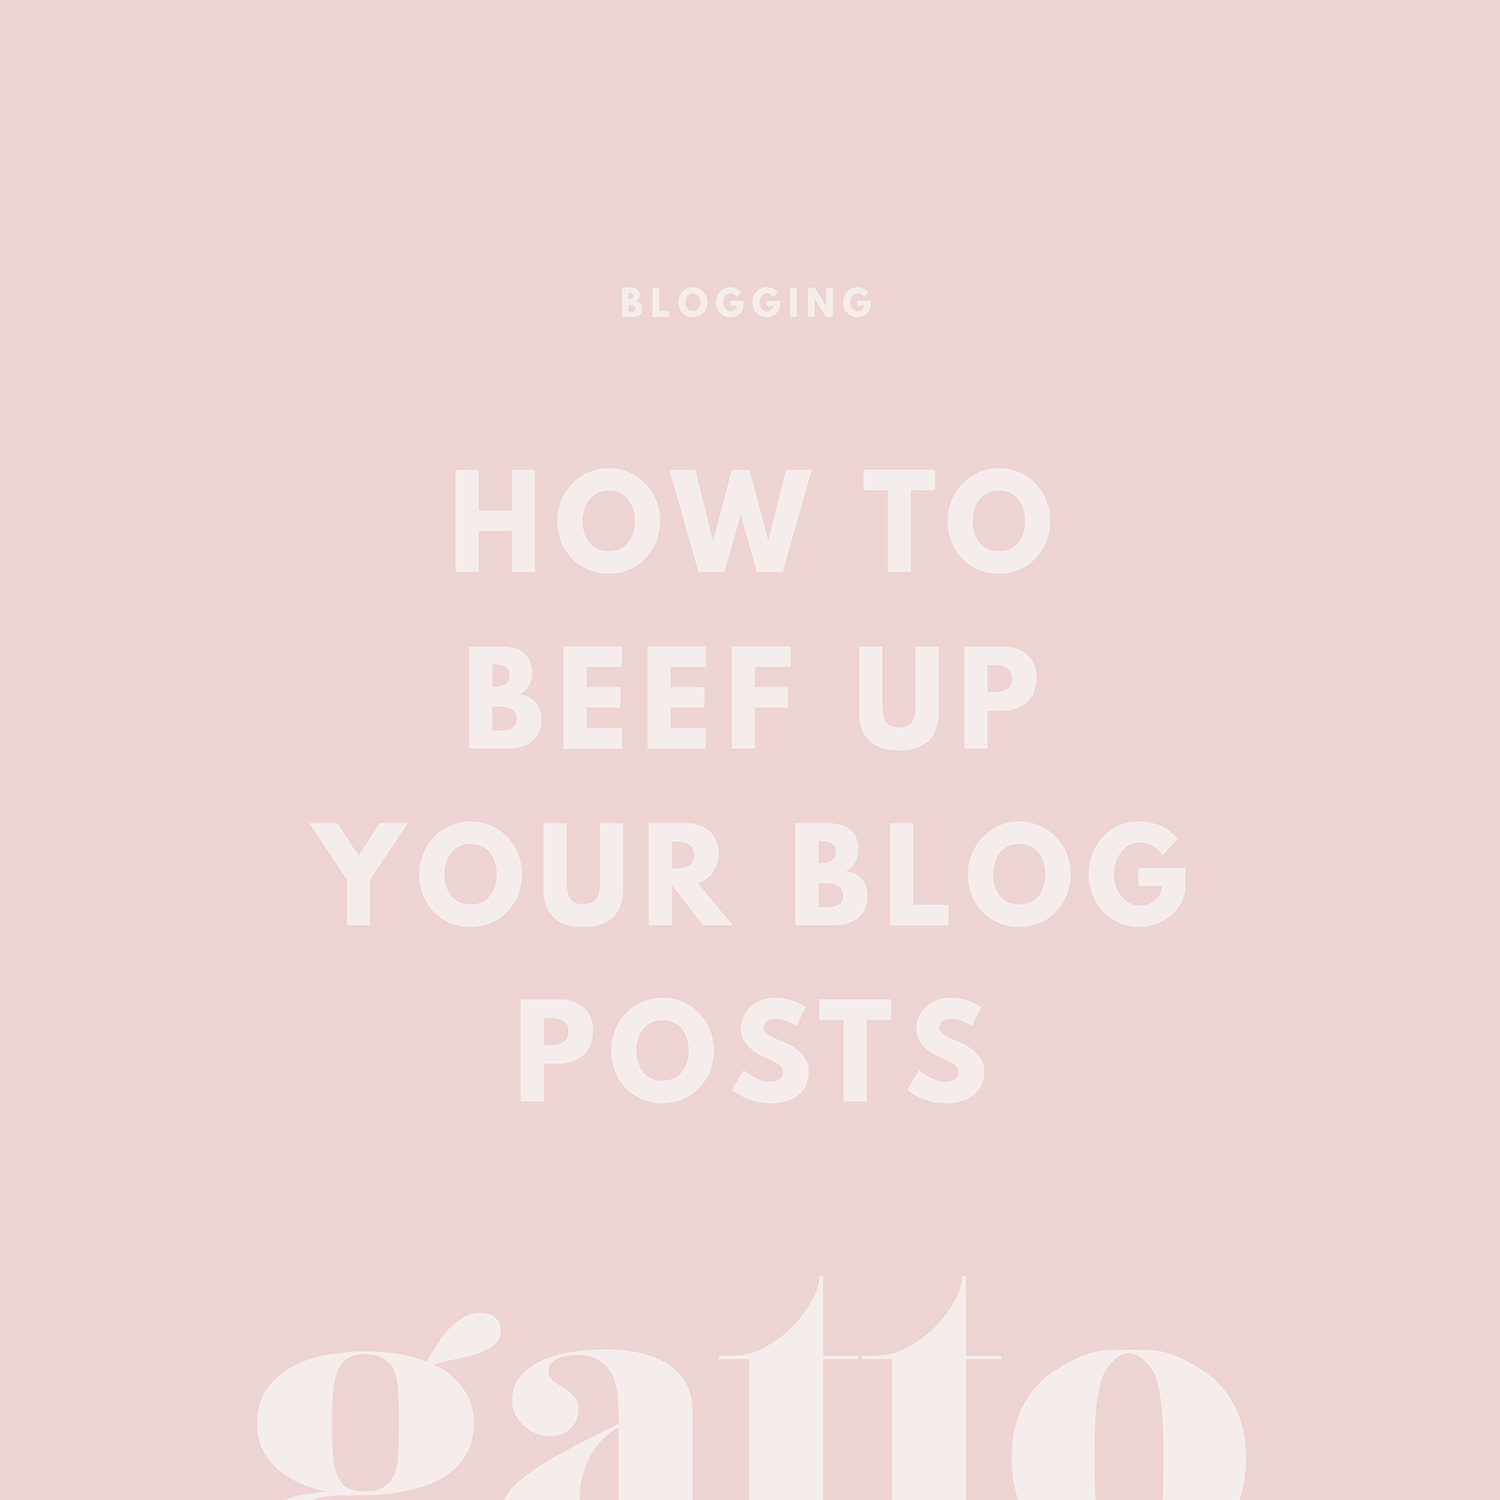 Beef Up Blog Posts | Blogging Advice and Tips | Branding and